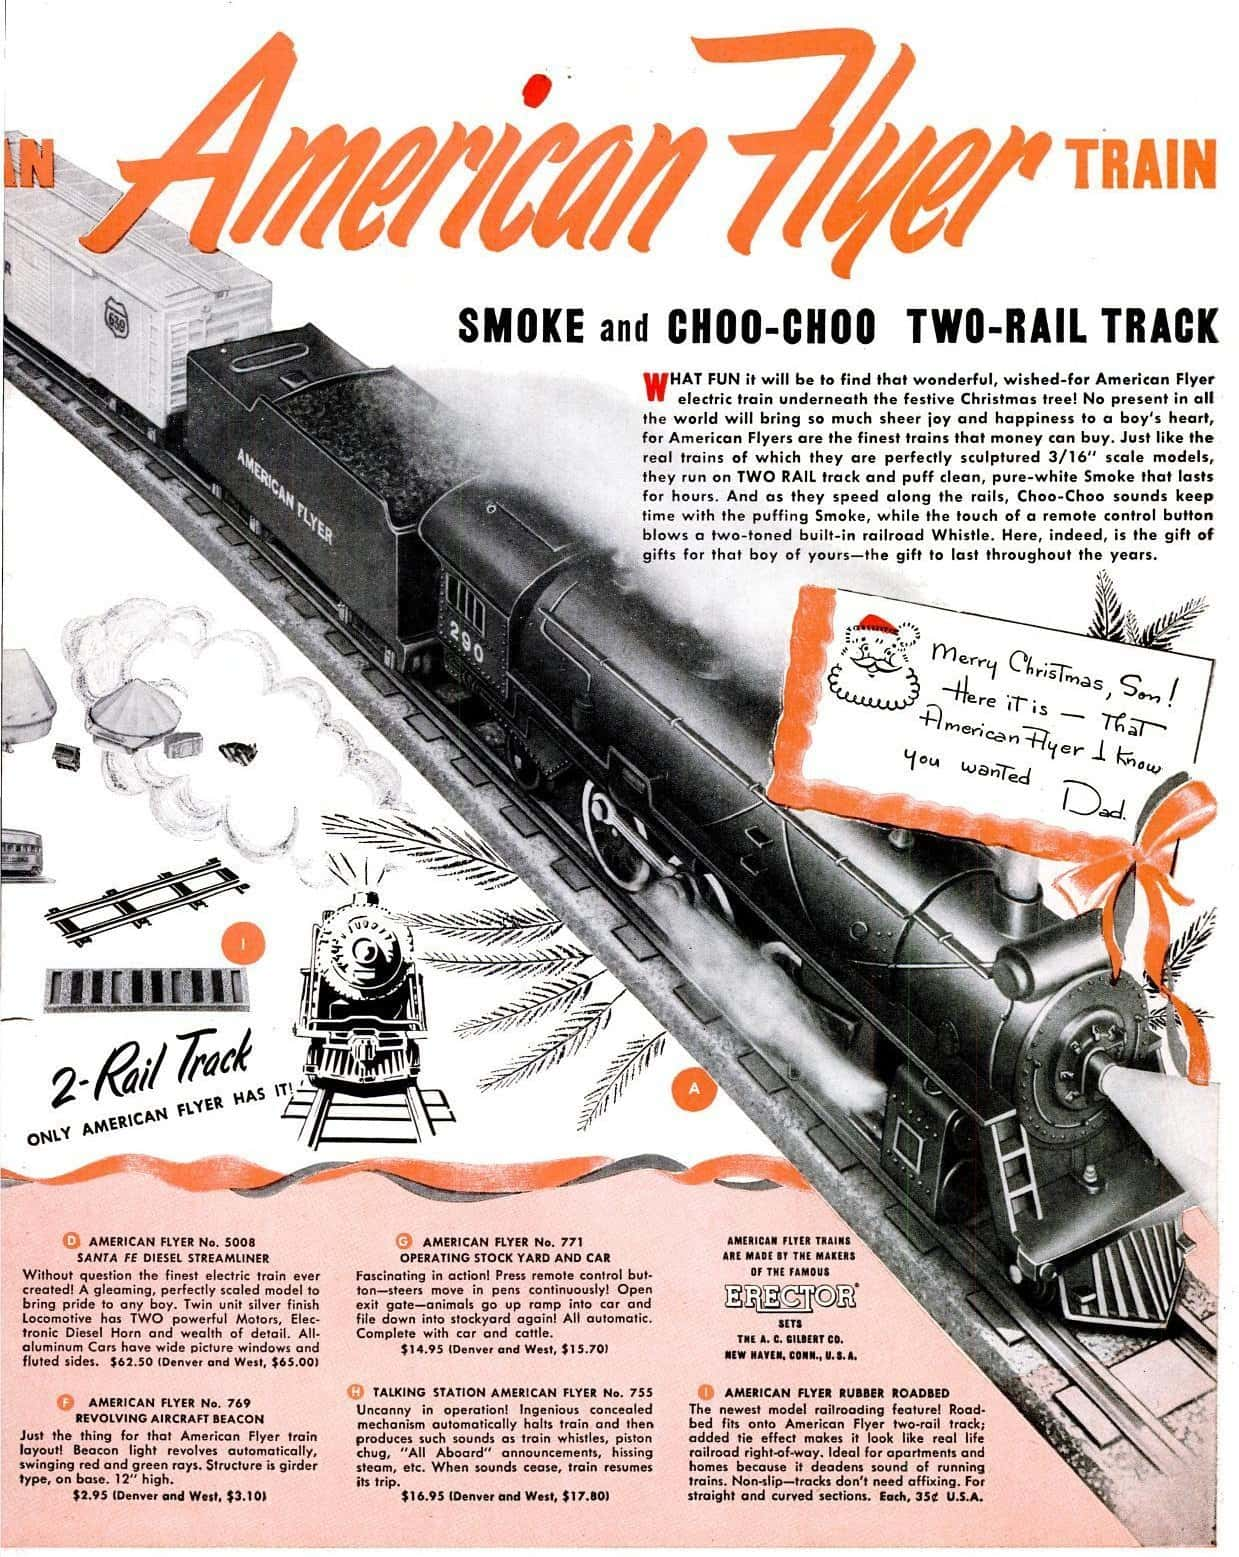 Vintage American Flyer train toys from 1950